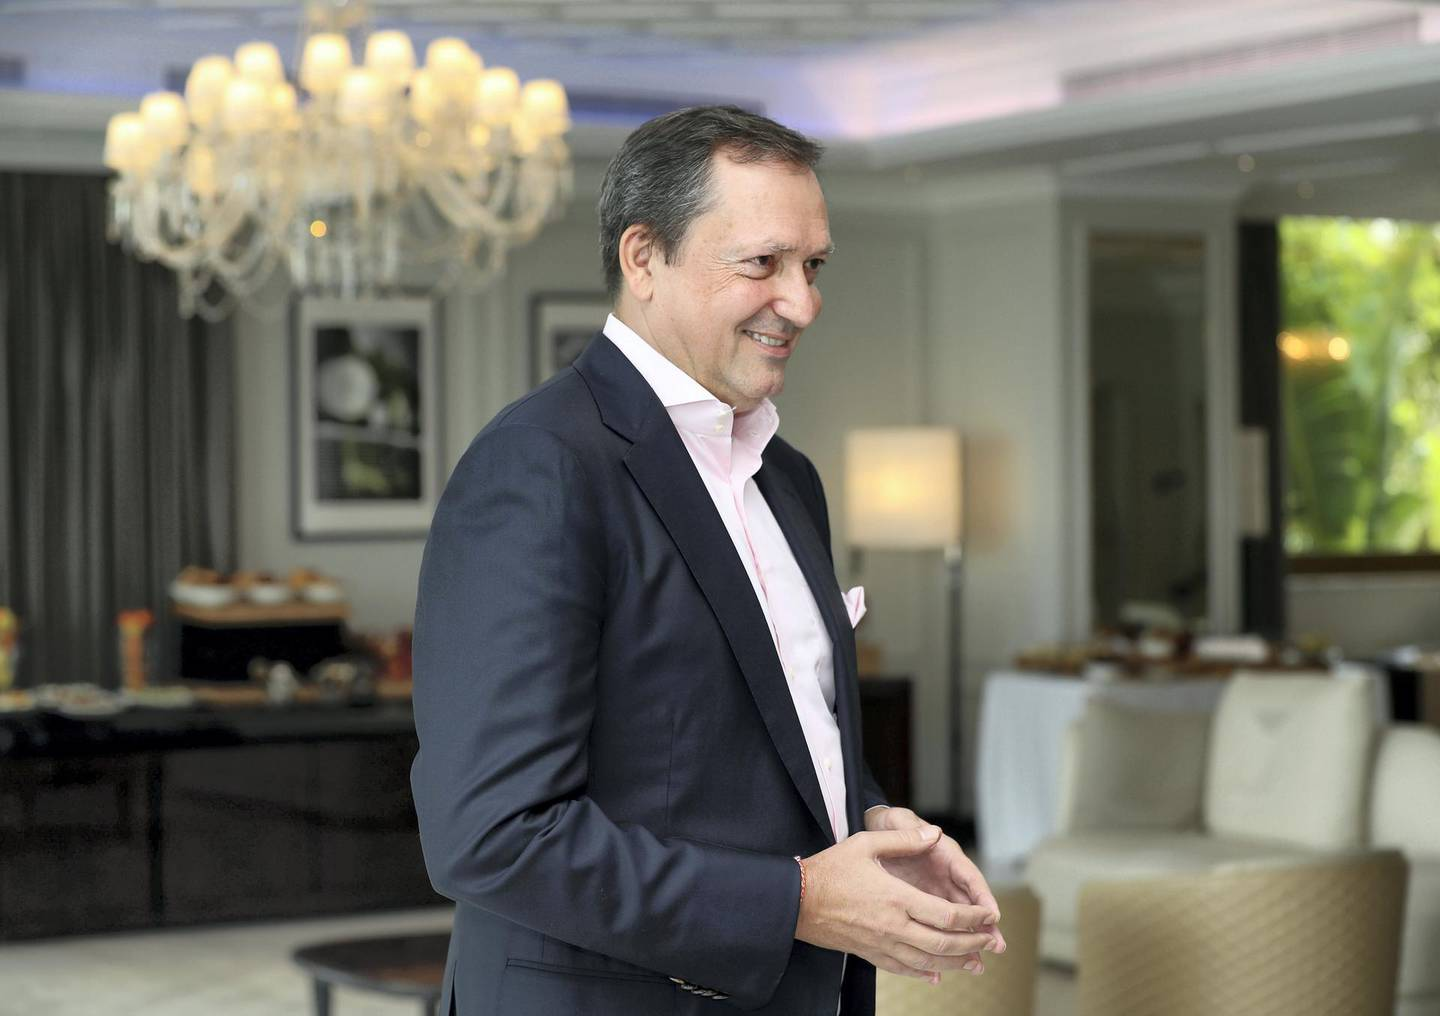 Dubai, United Arab Emirates - August 13, 2018: Josef Kleinienst, Chairman of Kleindienst Group developer of The Heart of Europe at the Sweden Beach Palace. Monday, August 13th, 2018 in Dubai. Chris Whiteoak / The National